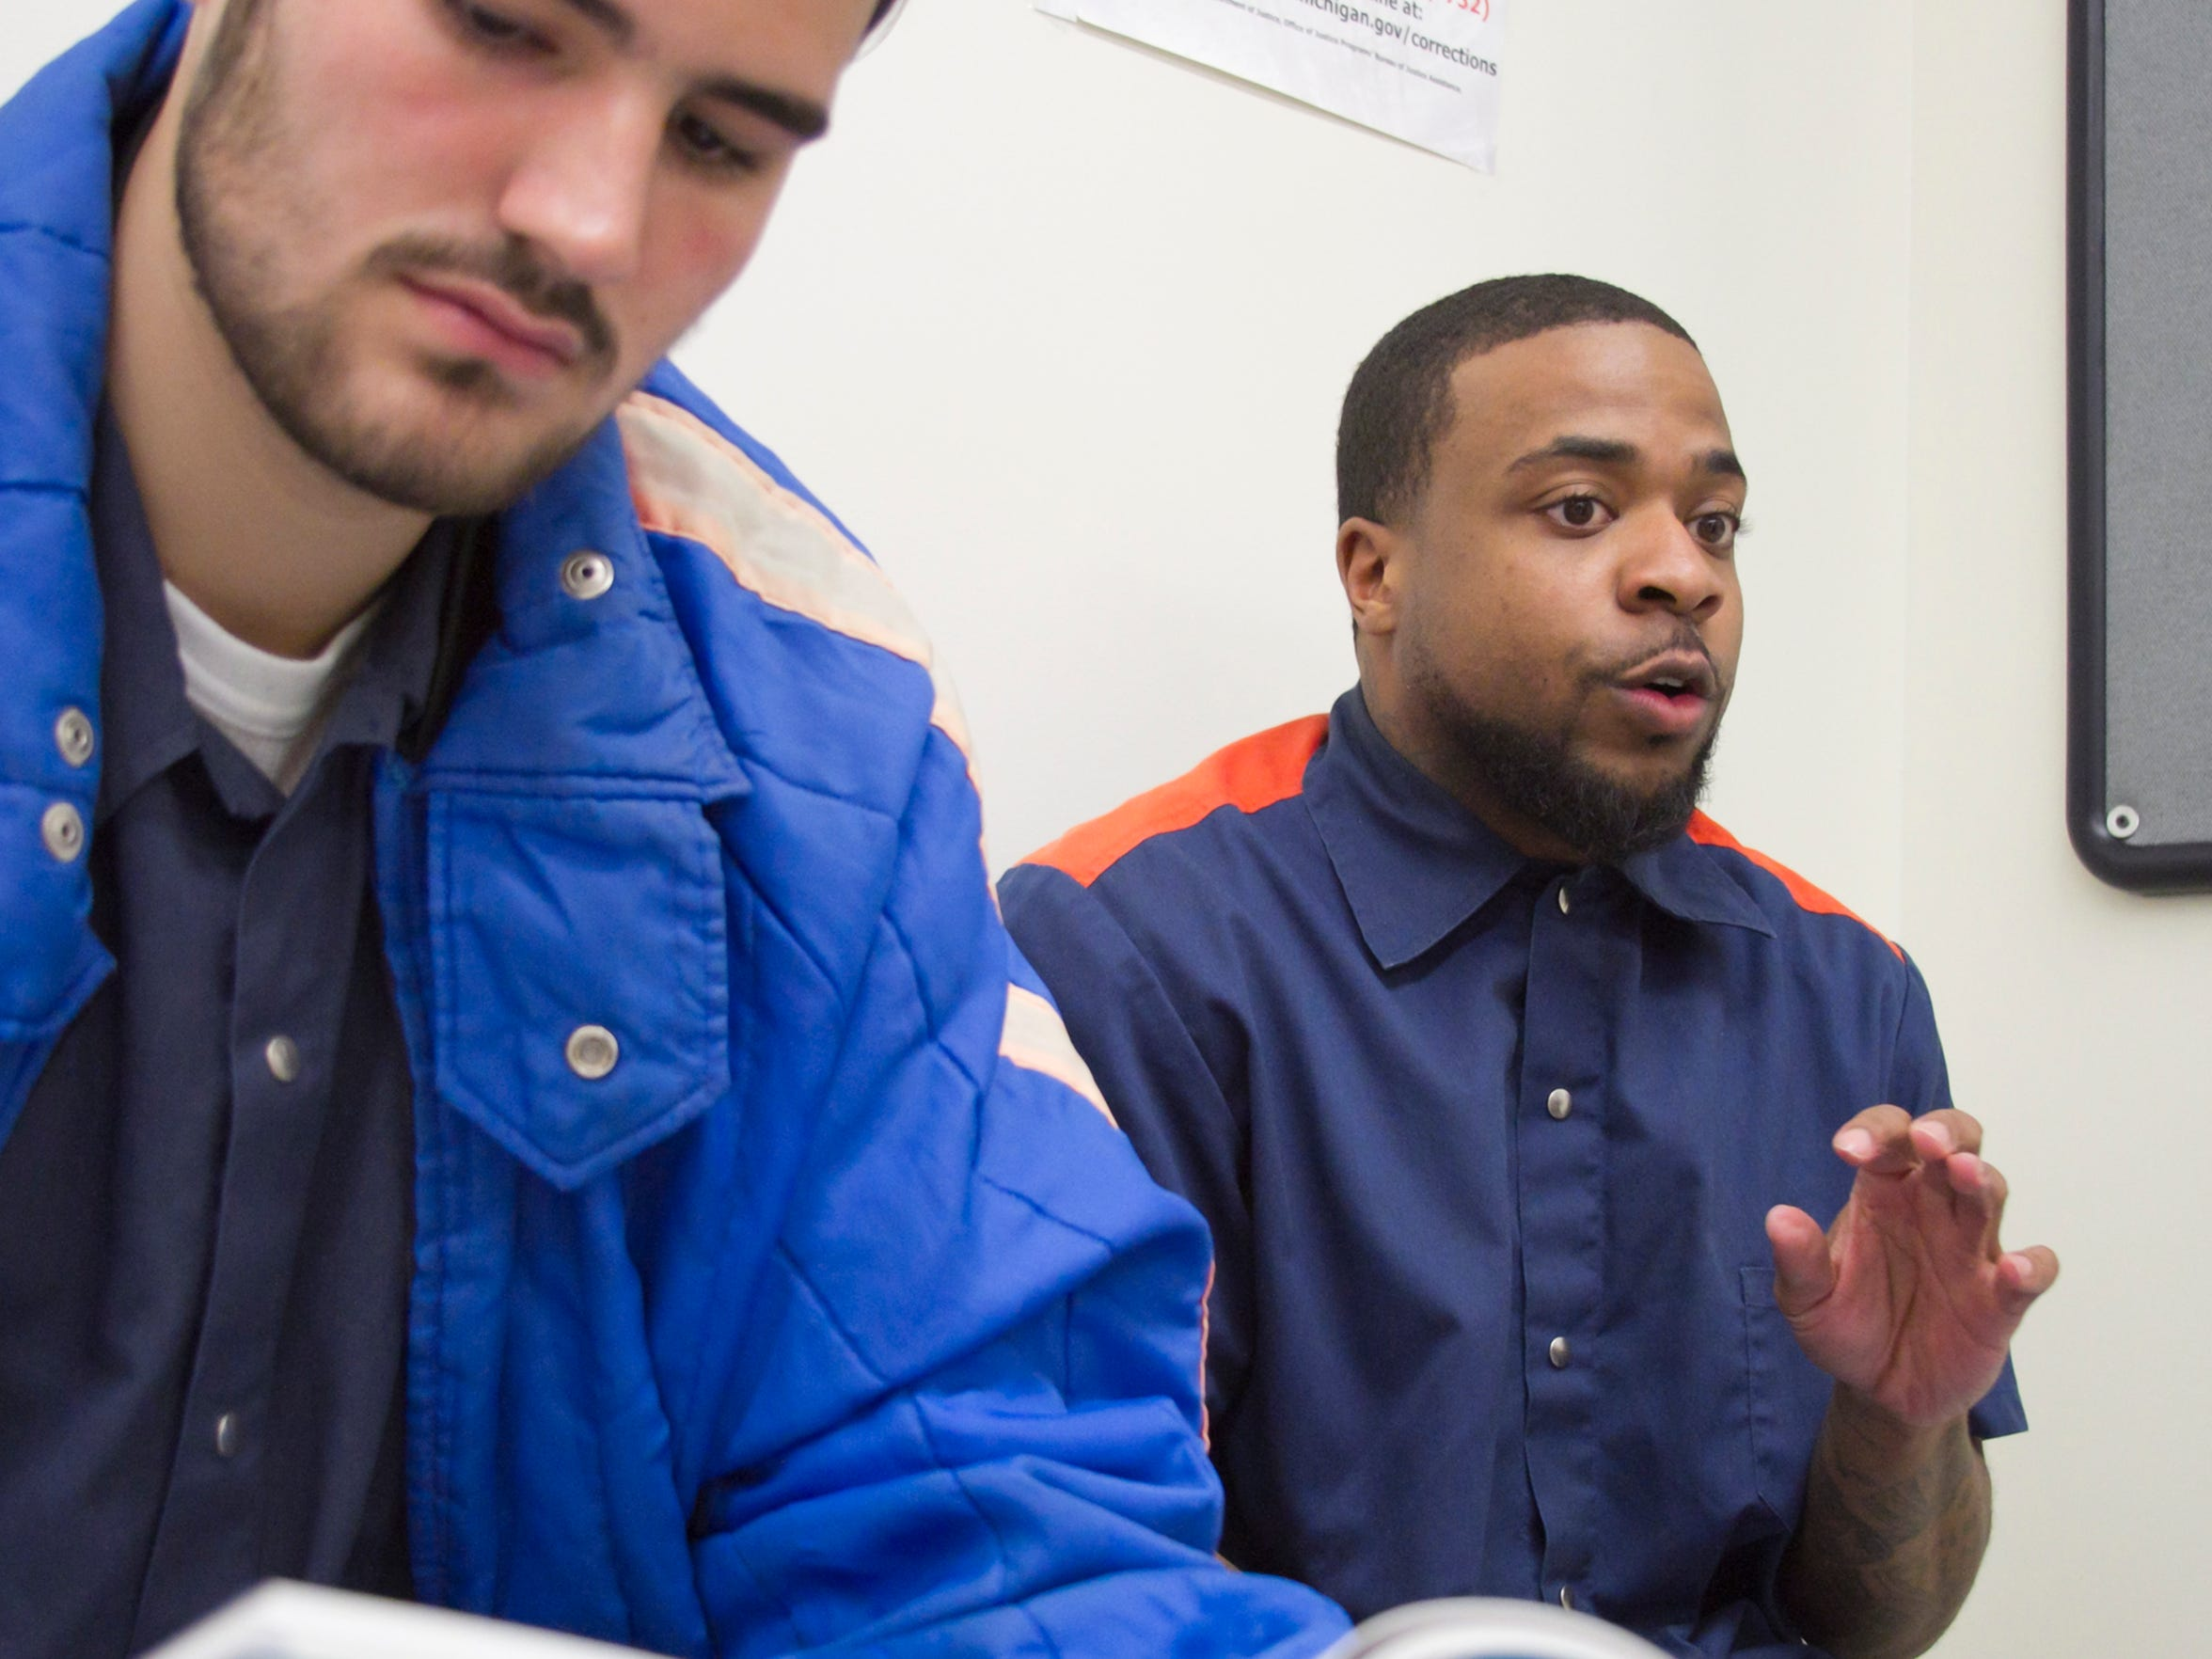 Learning at the Cooper Street Correctional Facility